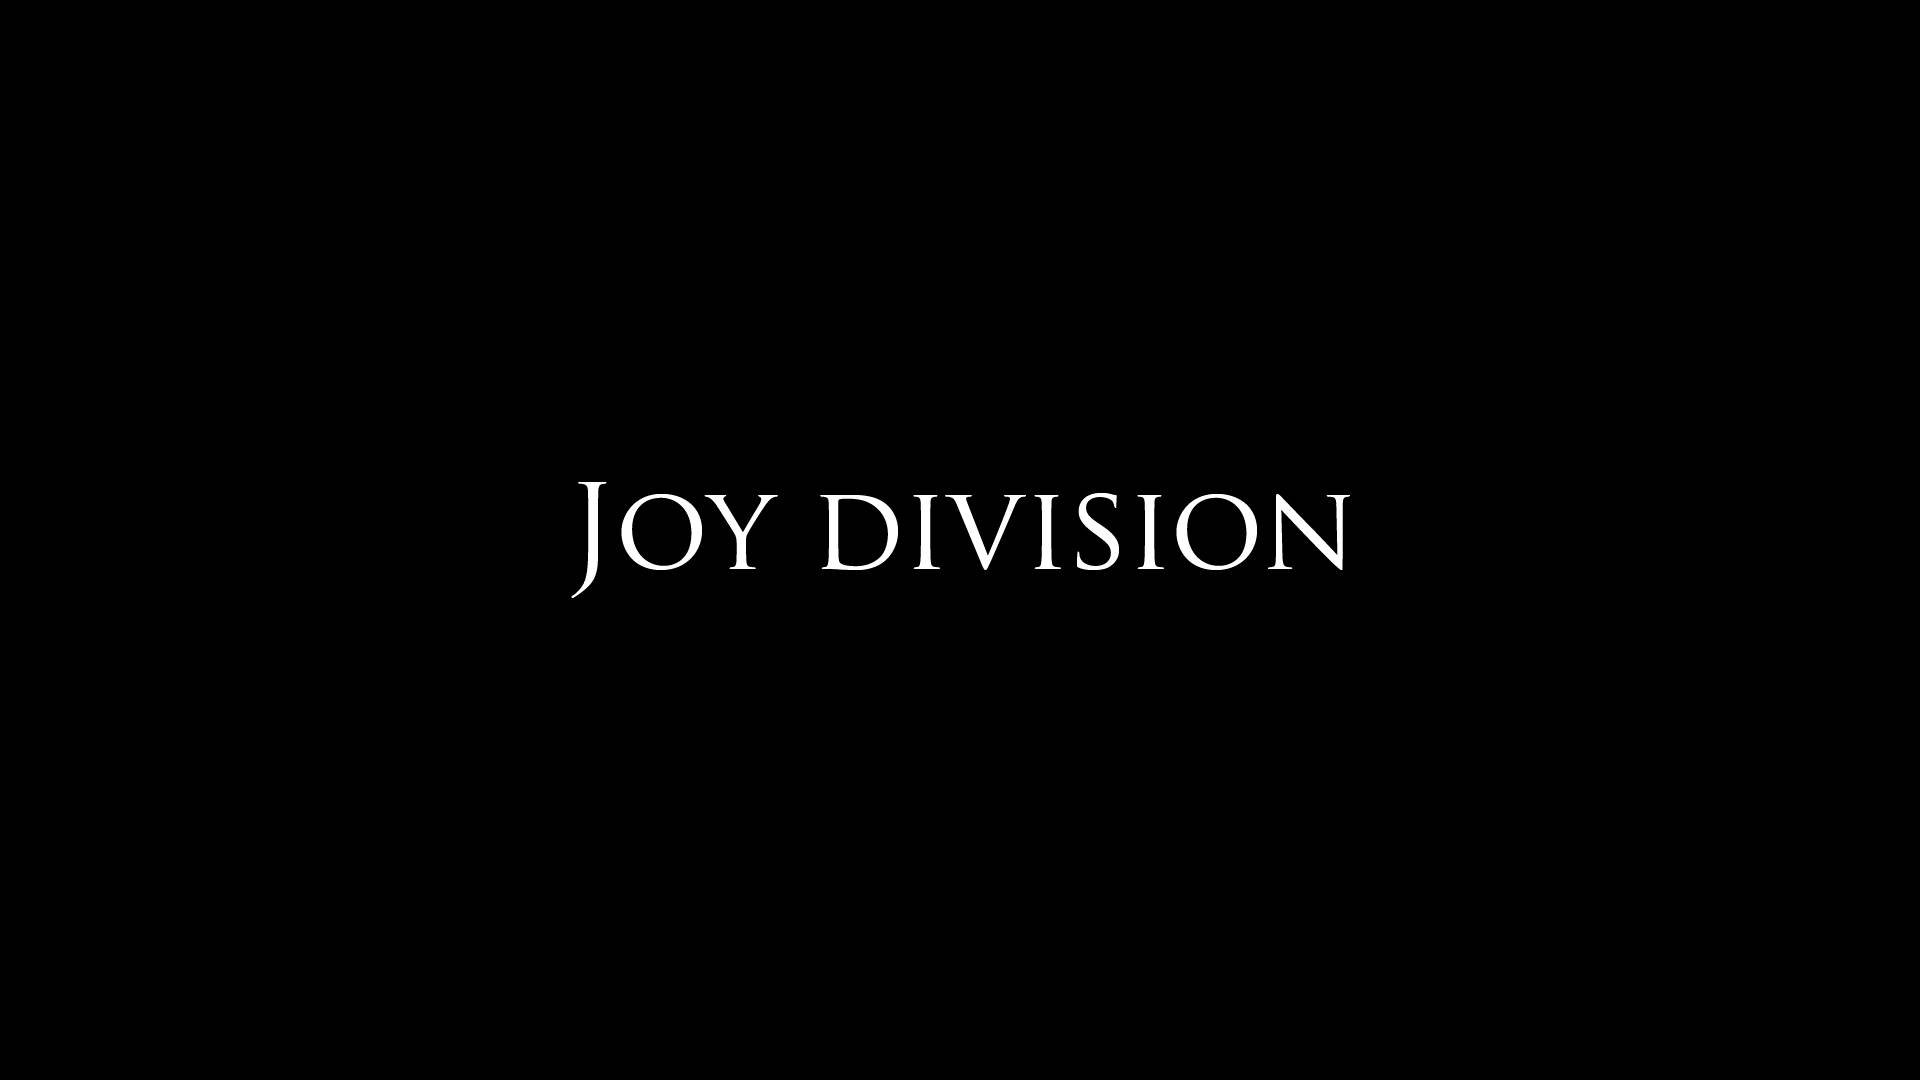 joy division images hd - photo #16